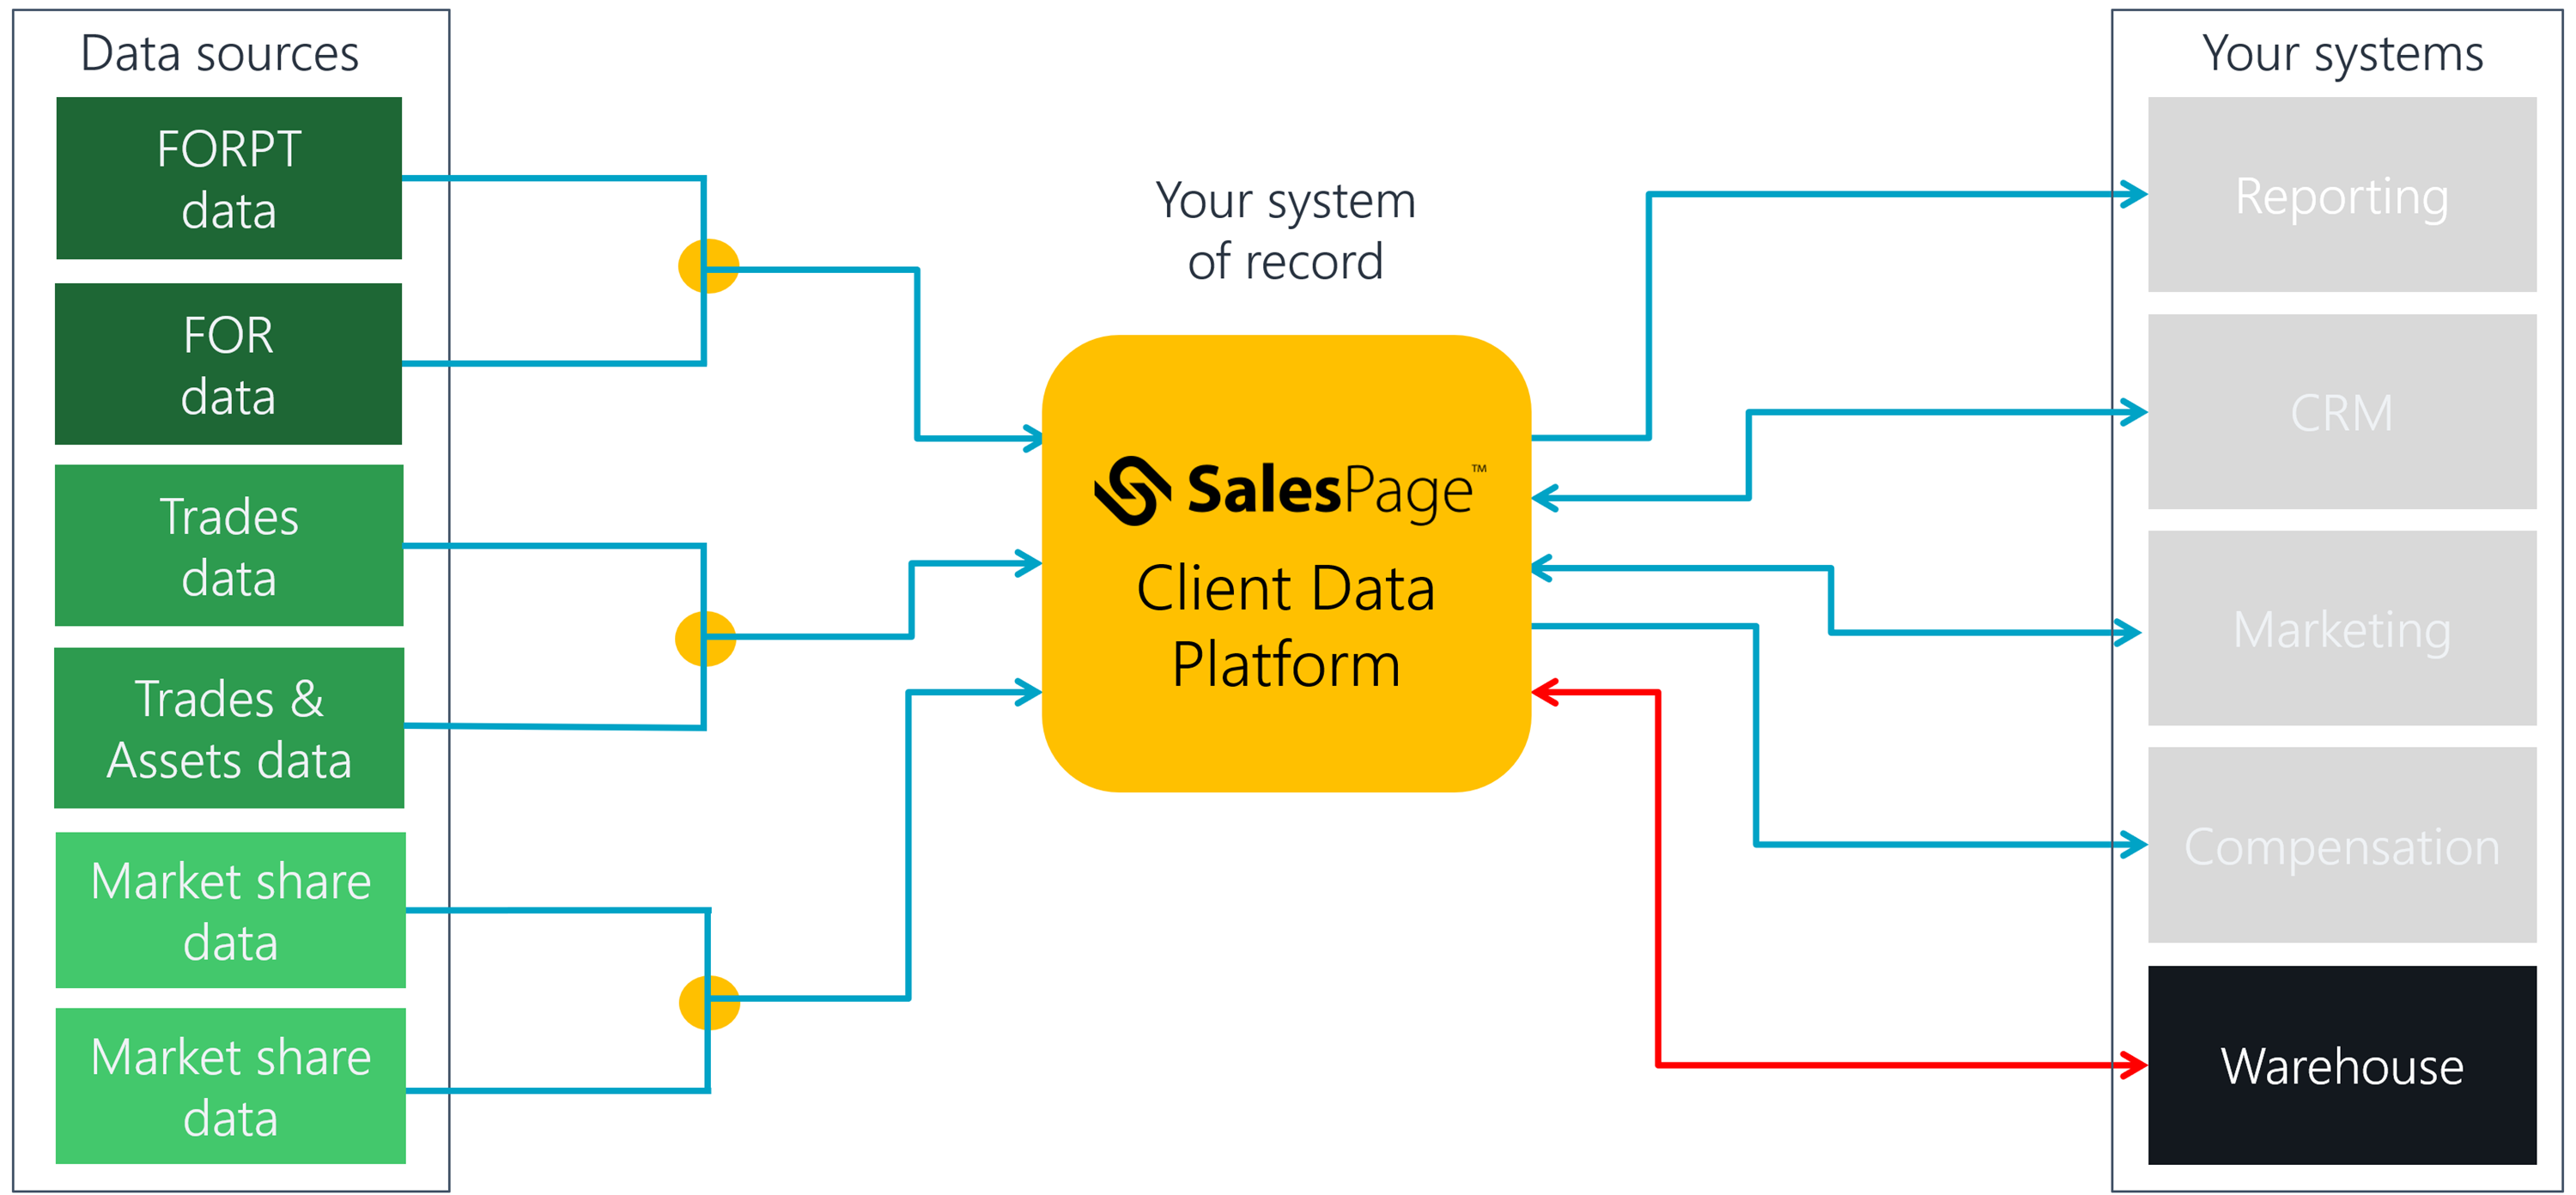 SalesPage Client Data Platform Warehouse